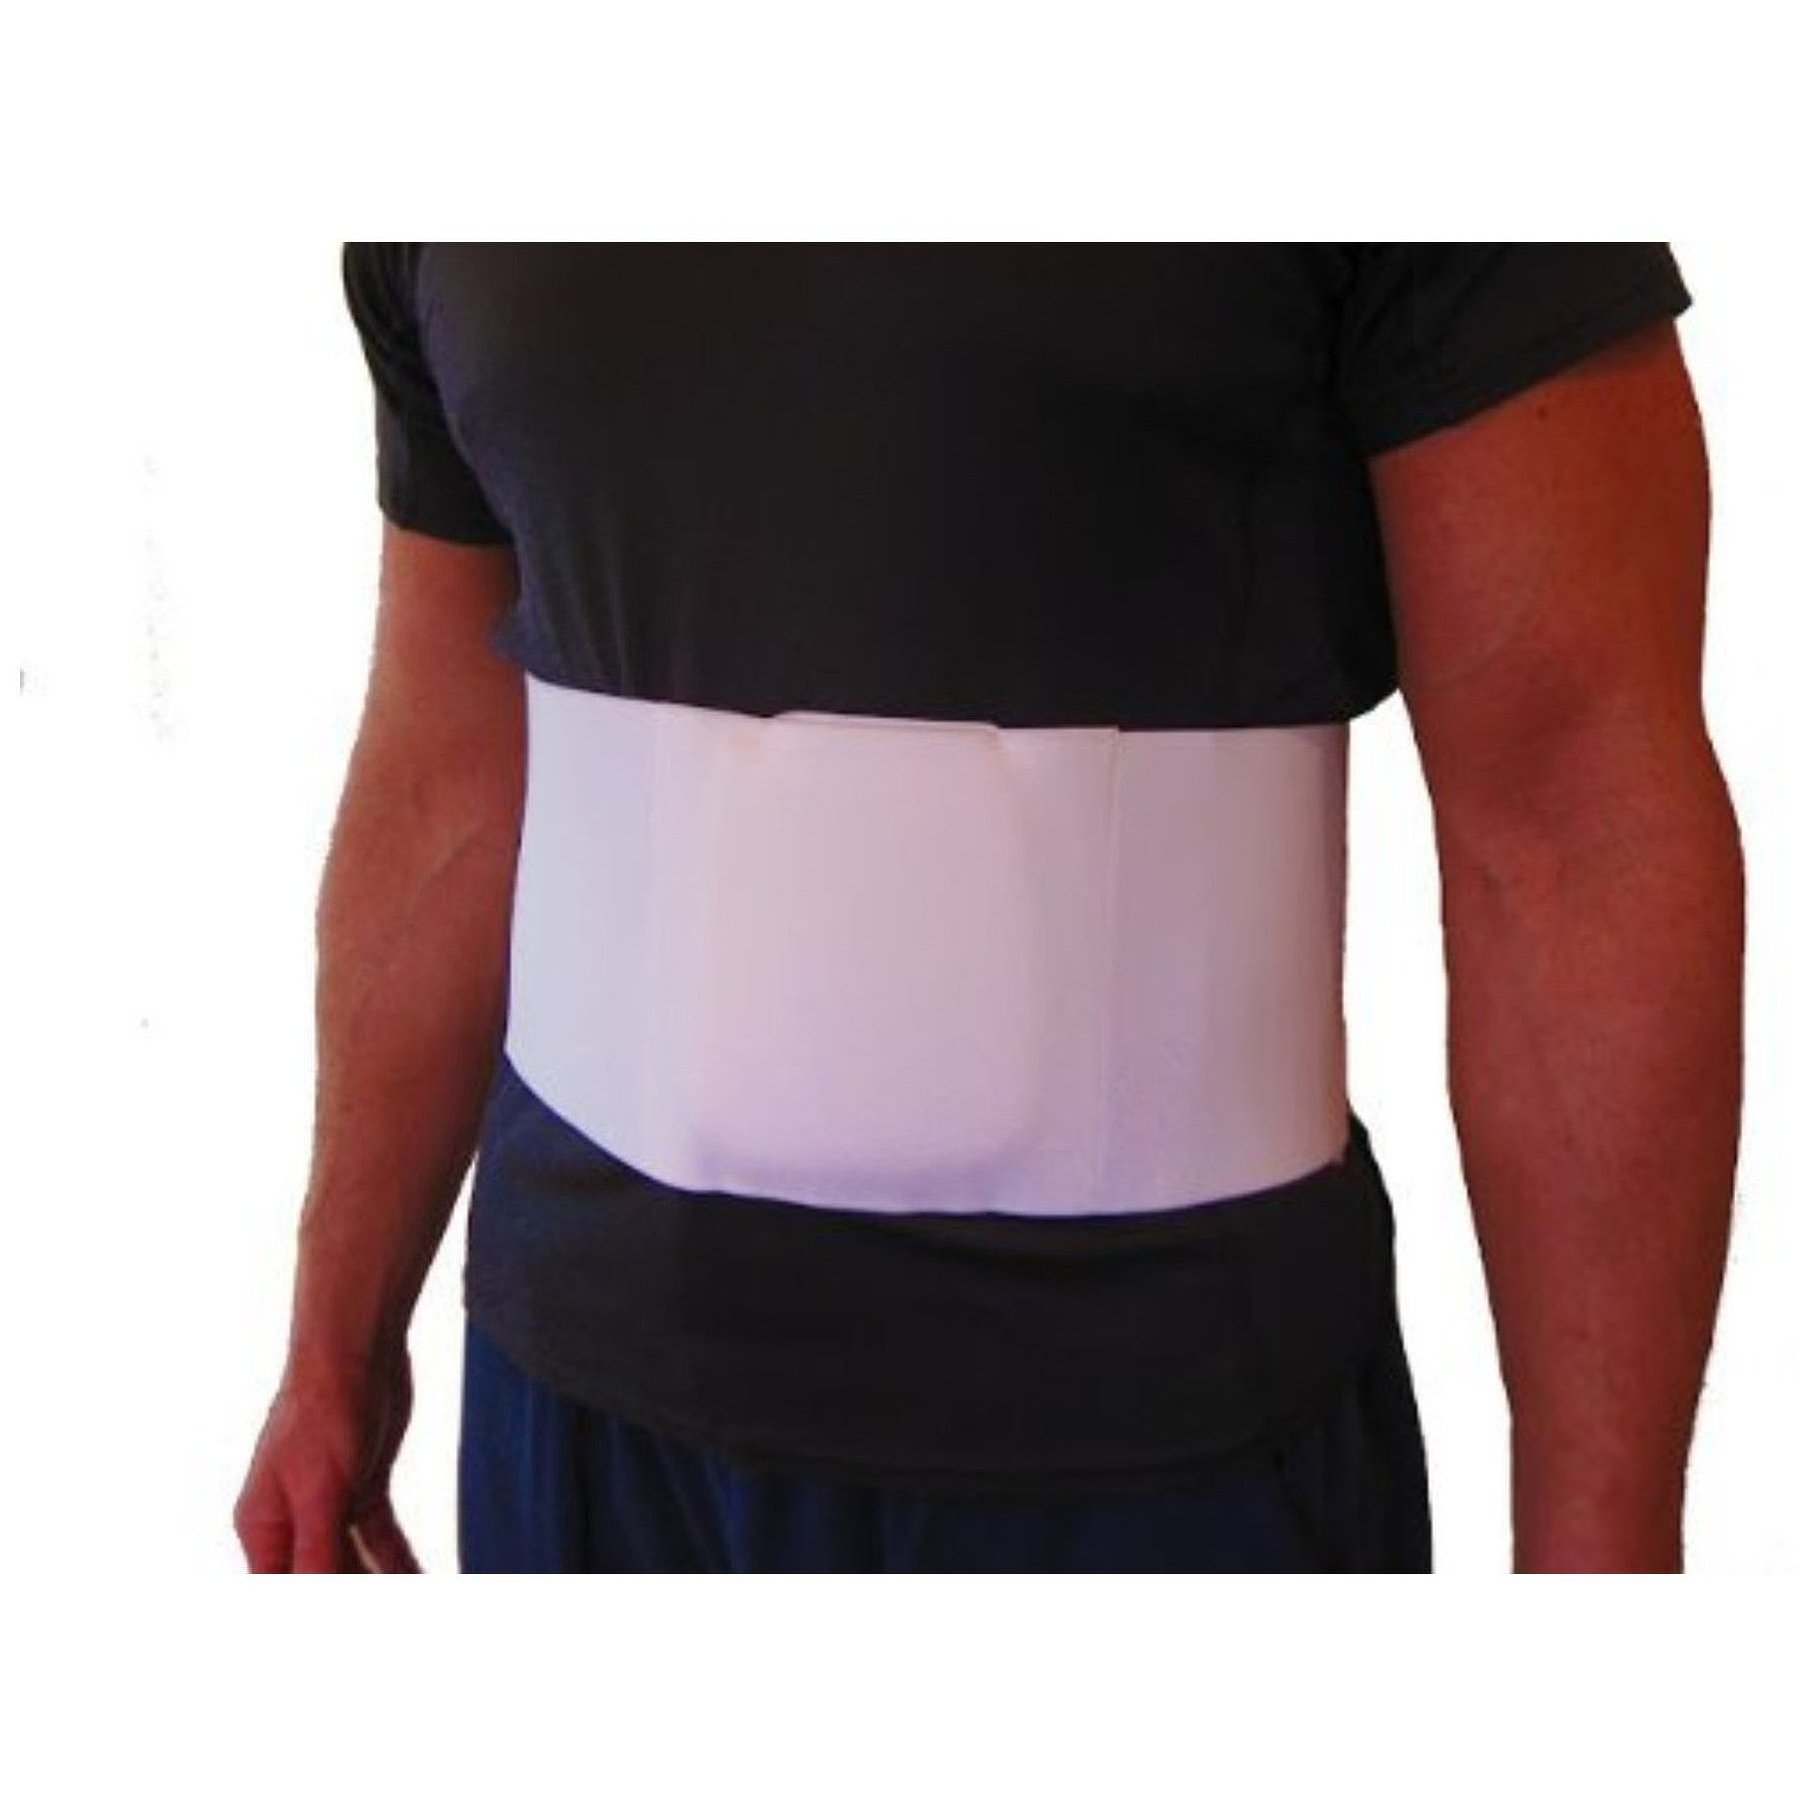 "FlexaMed Umbilical Hernia Belt with Compression Pad - 6"" Wide (S)"